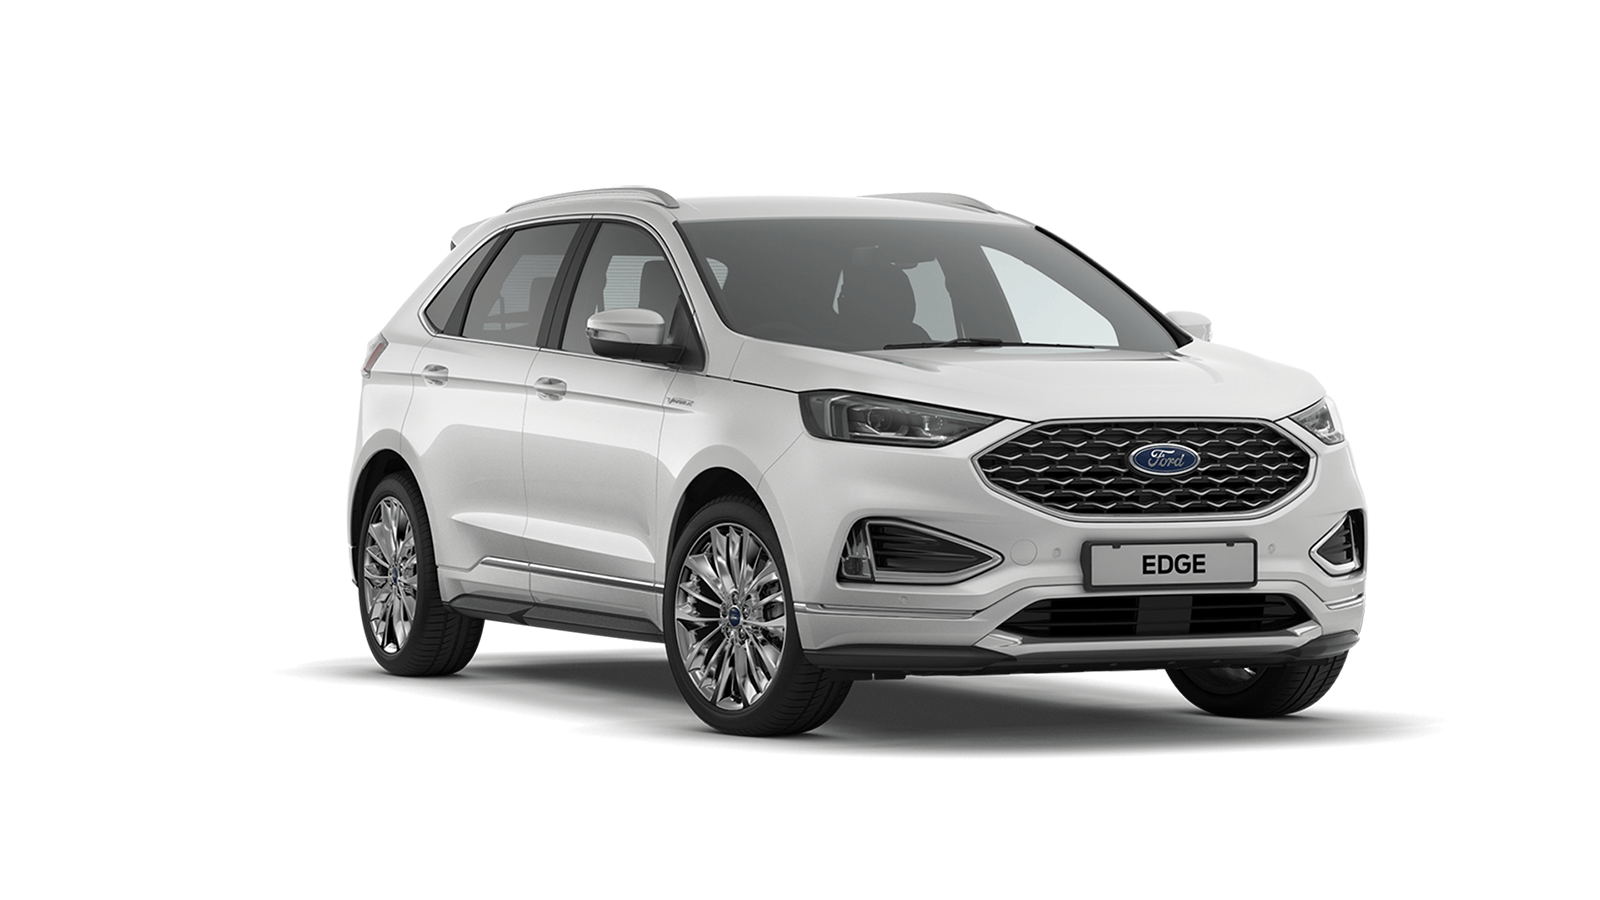 New Ford Edge Vignale 2.0L EcoBlue 238PS at Browne & Day